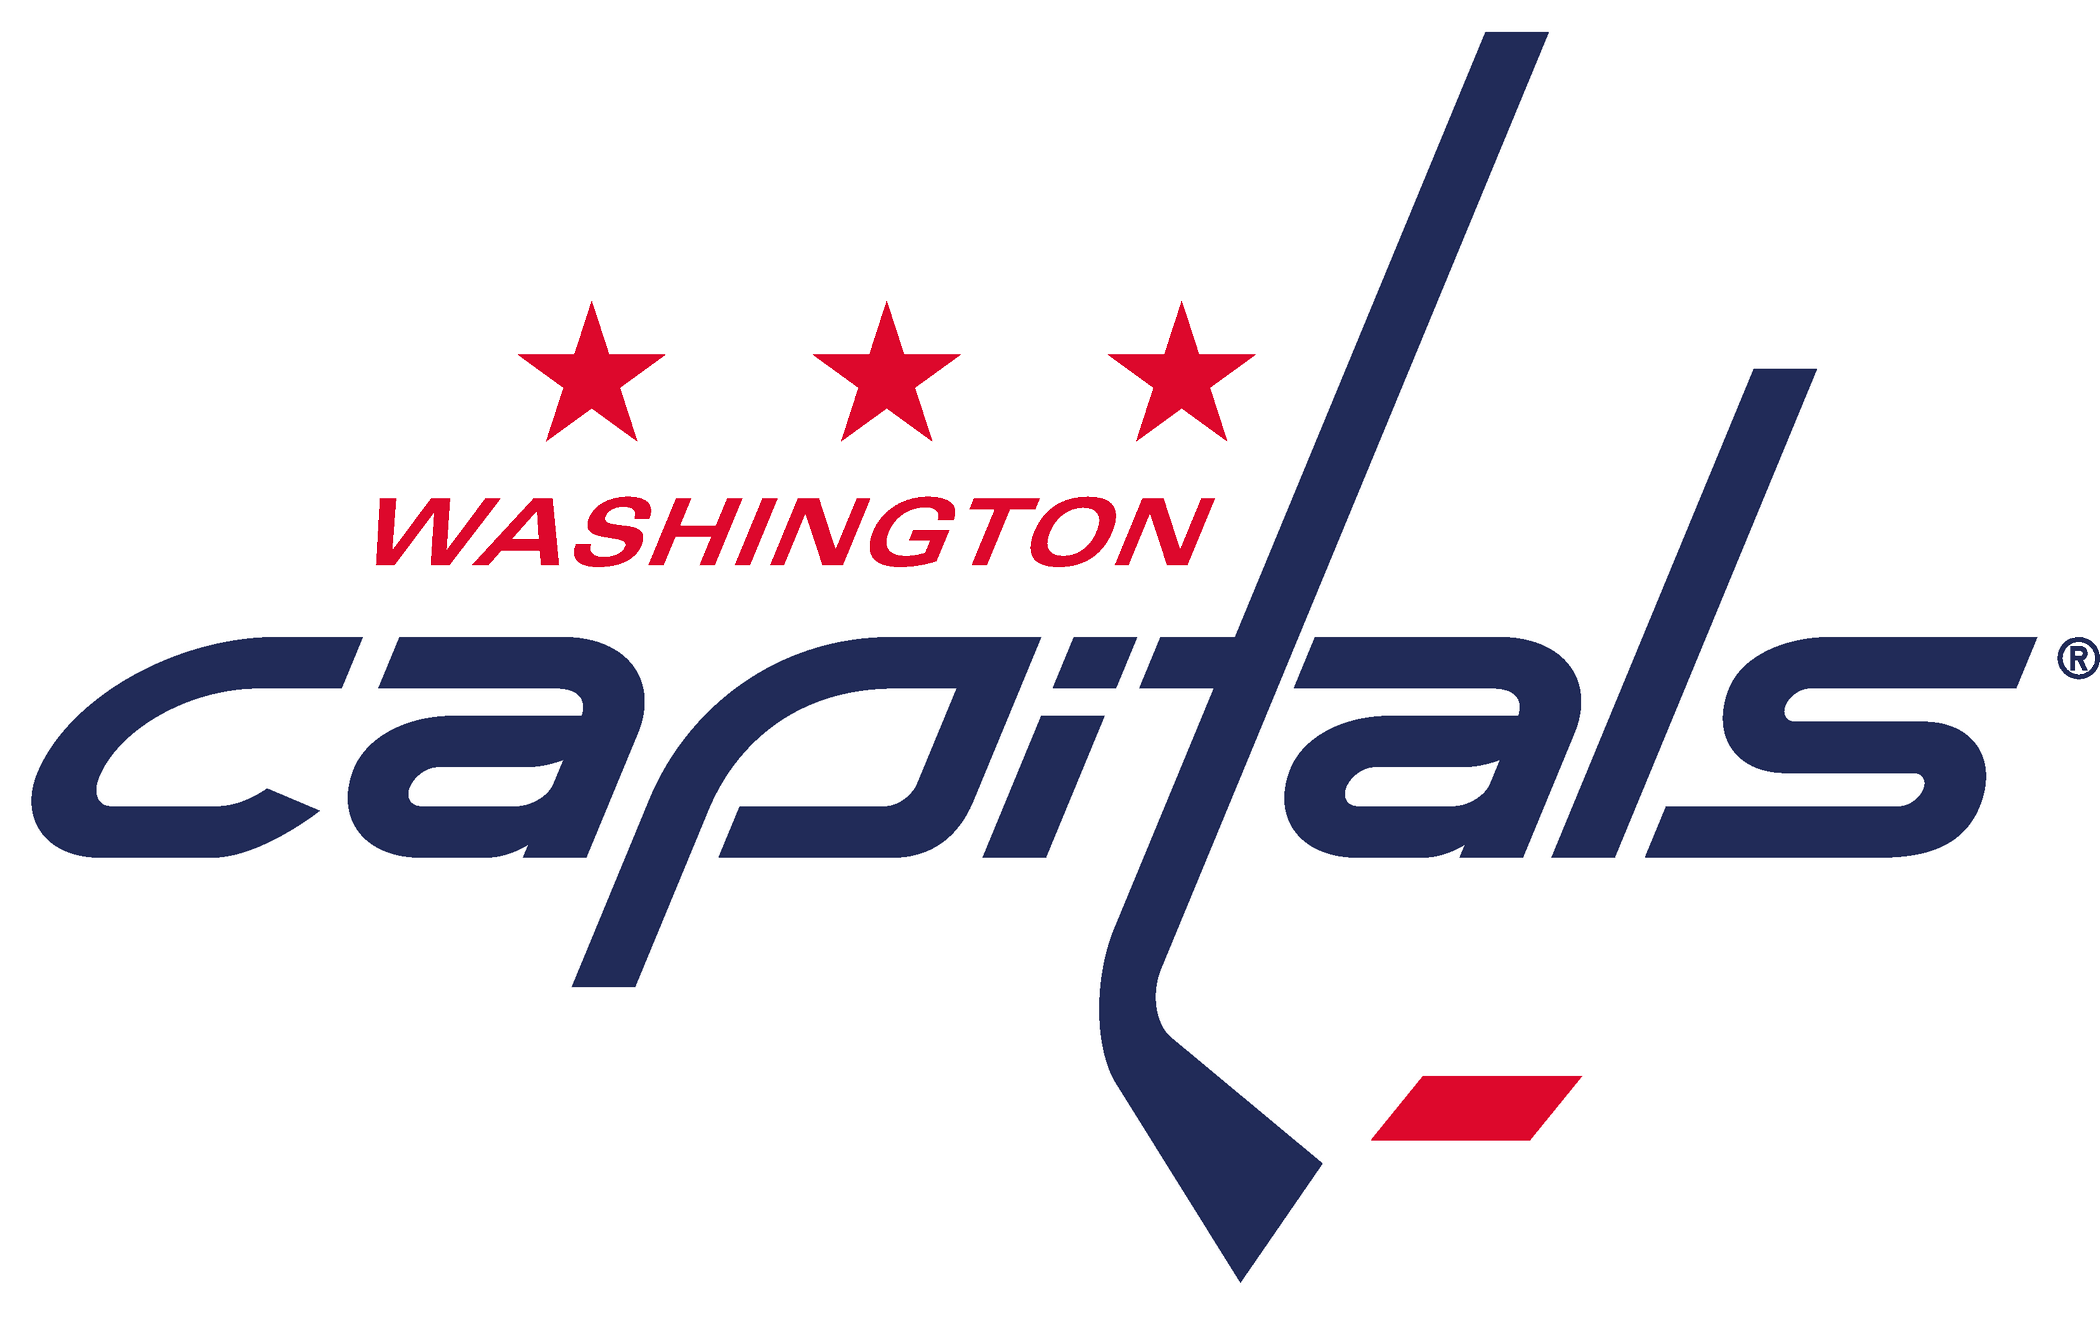 Washington Capitals Logo logoeps.net